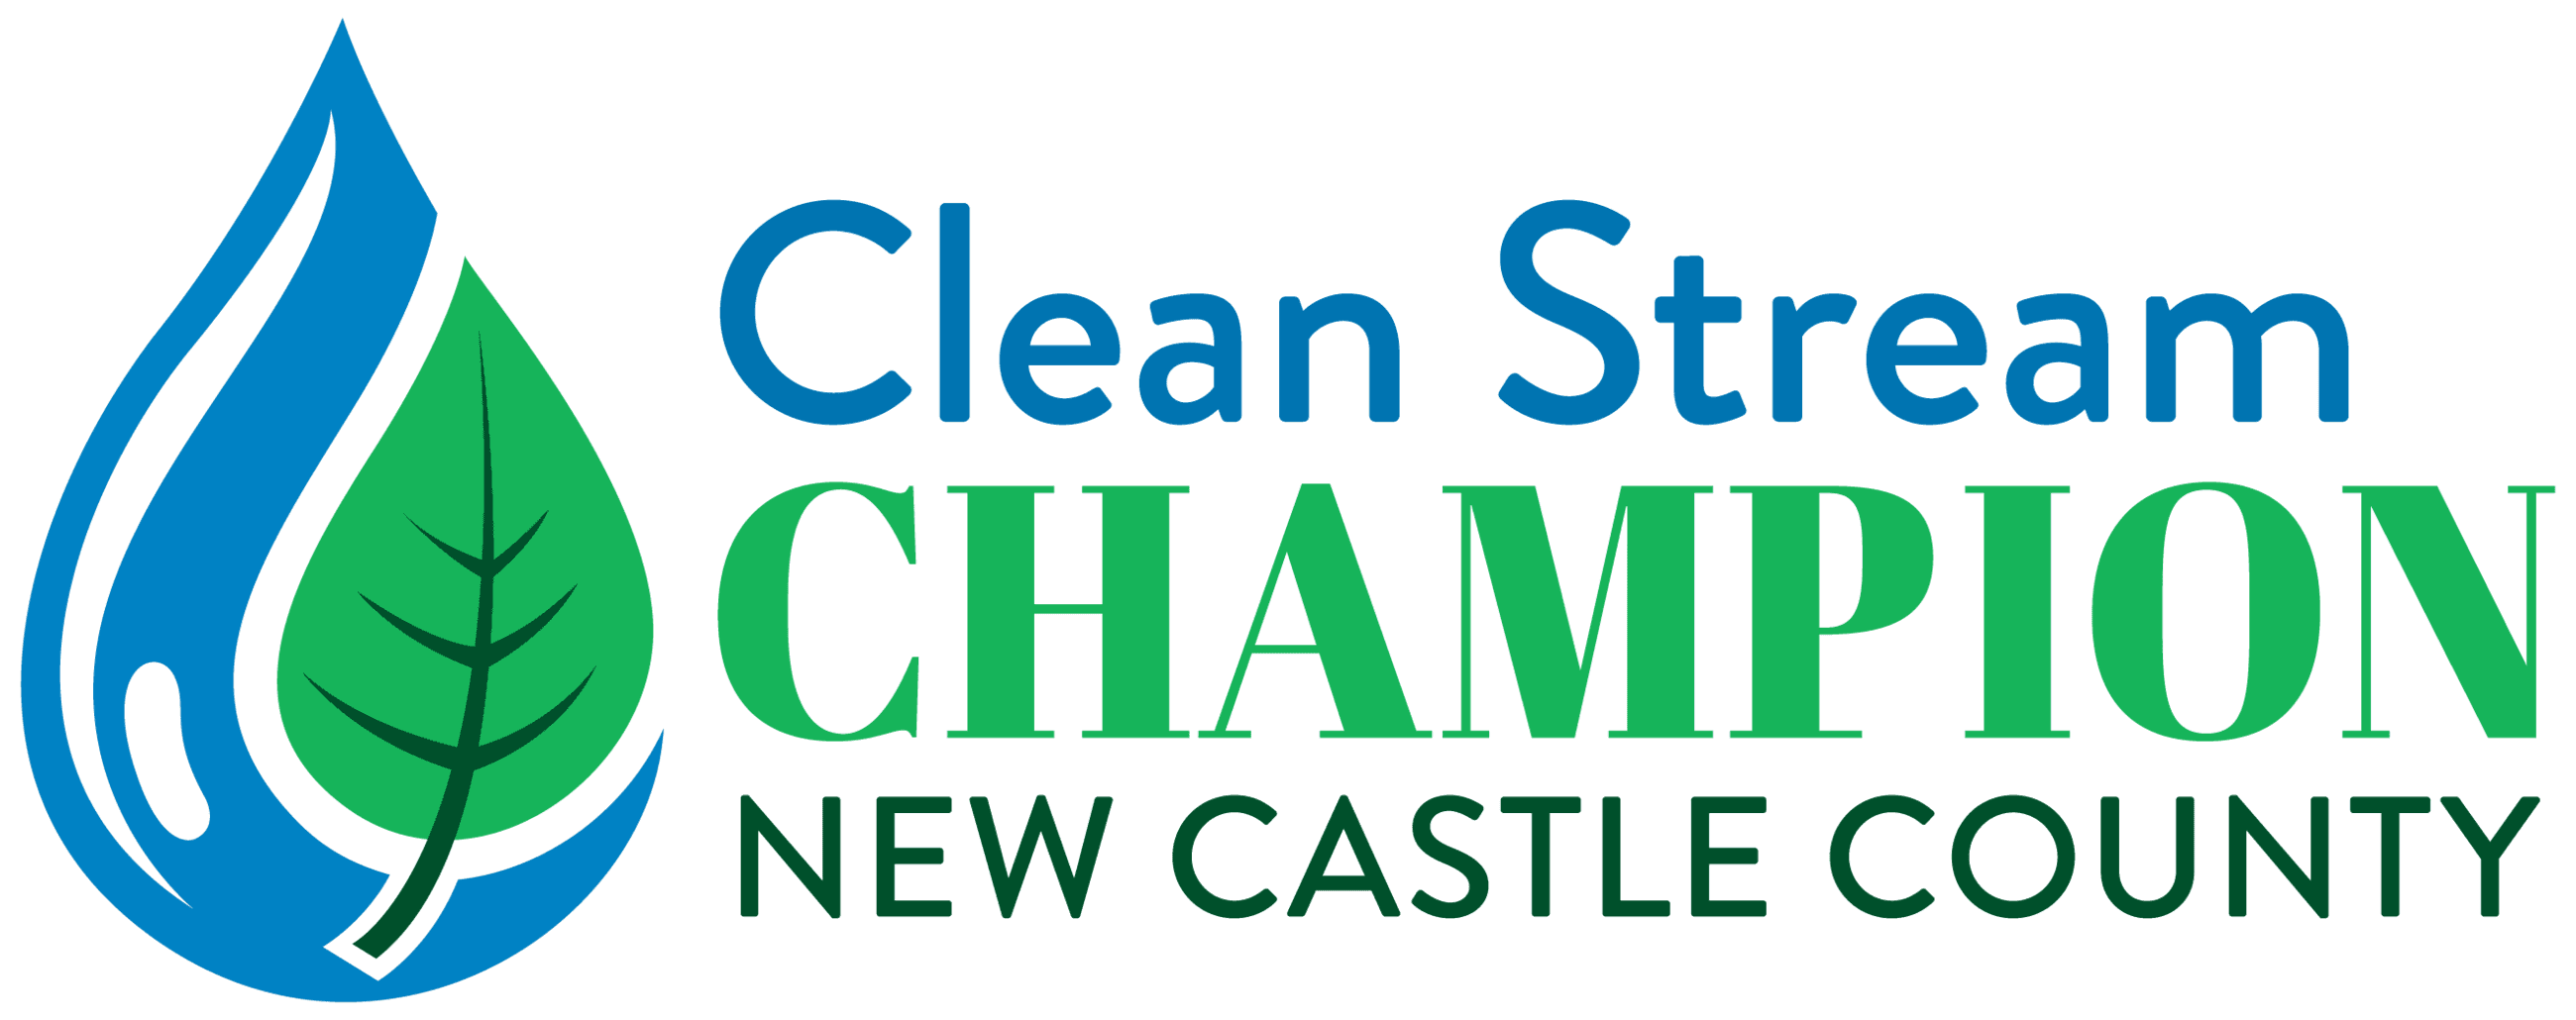 Clean Stream Champion Logo